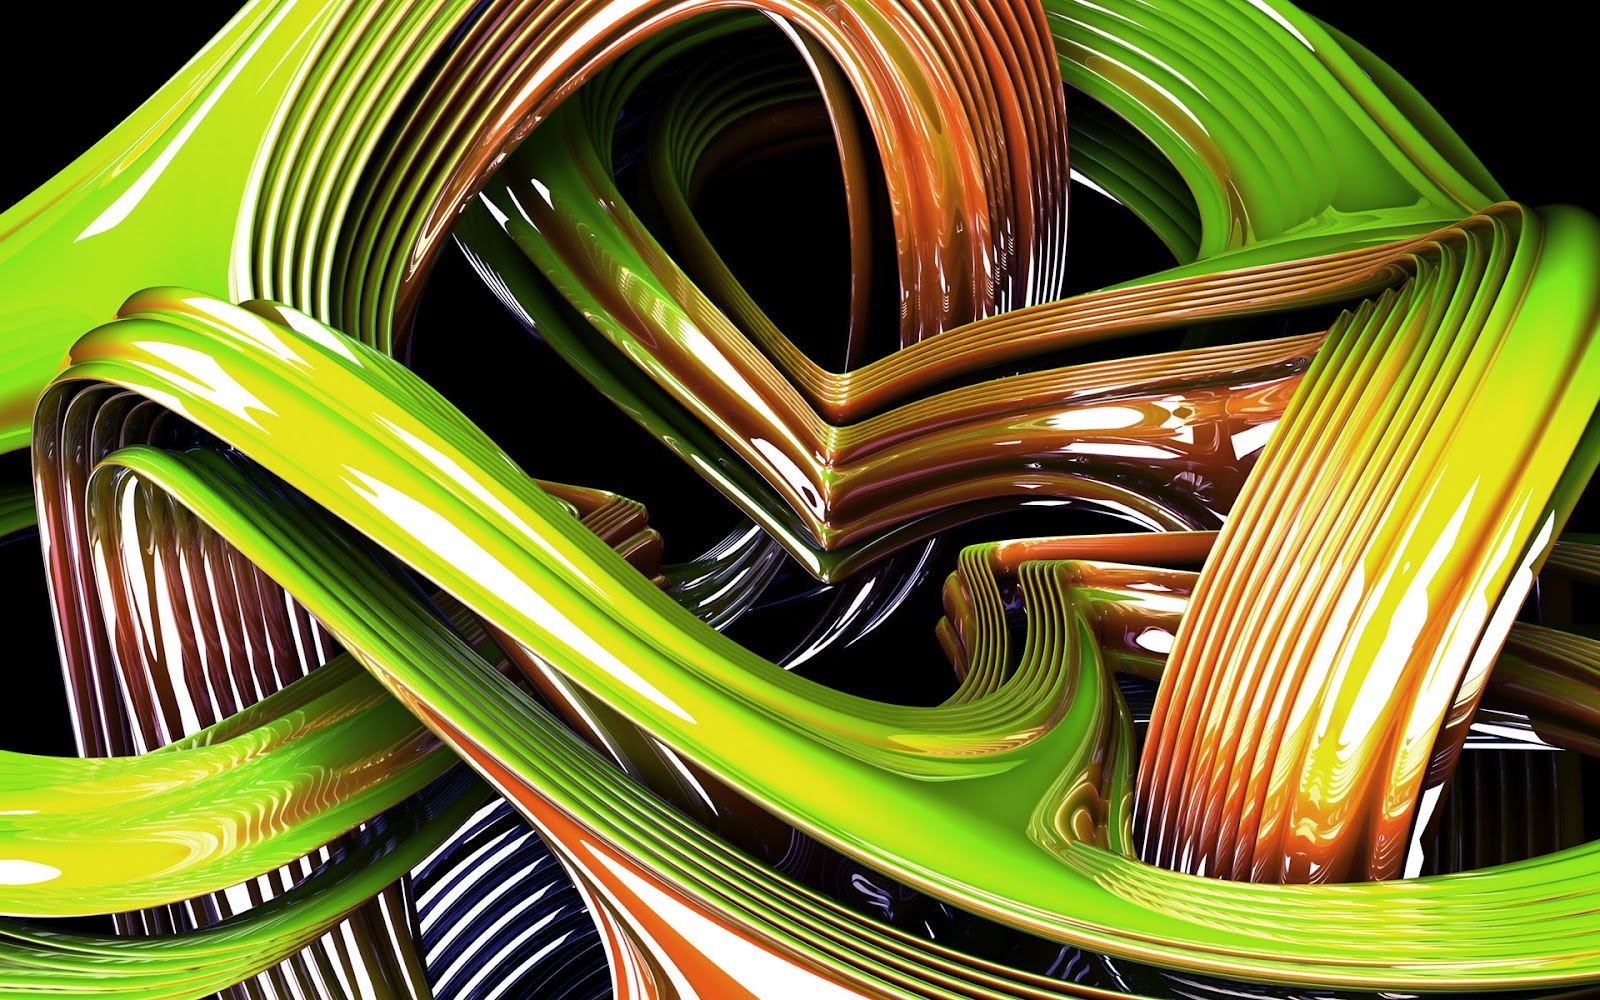 Great Abstract 3D Wallpaper | Abstract Graphic Wallpaper